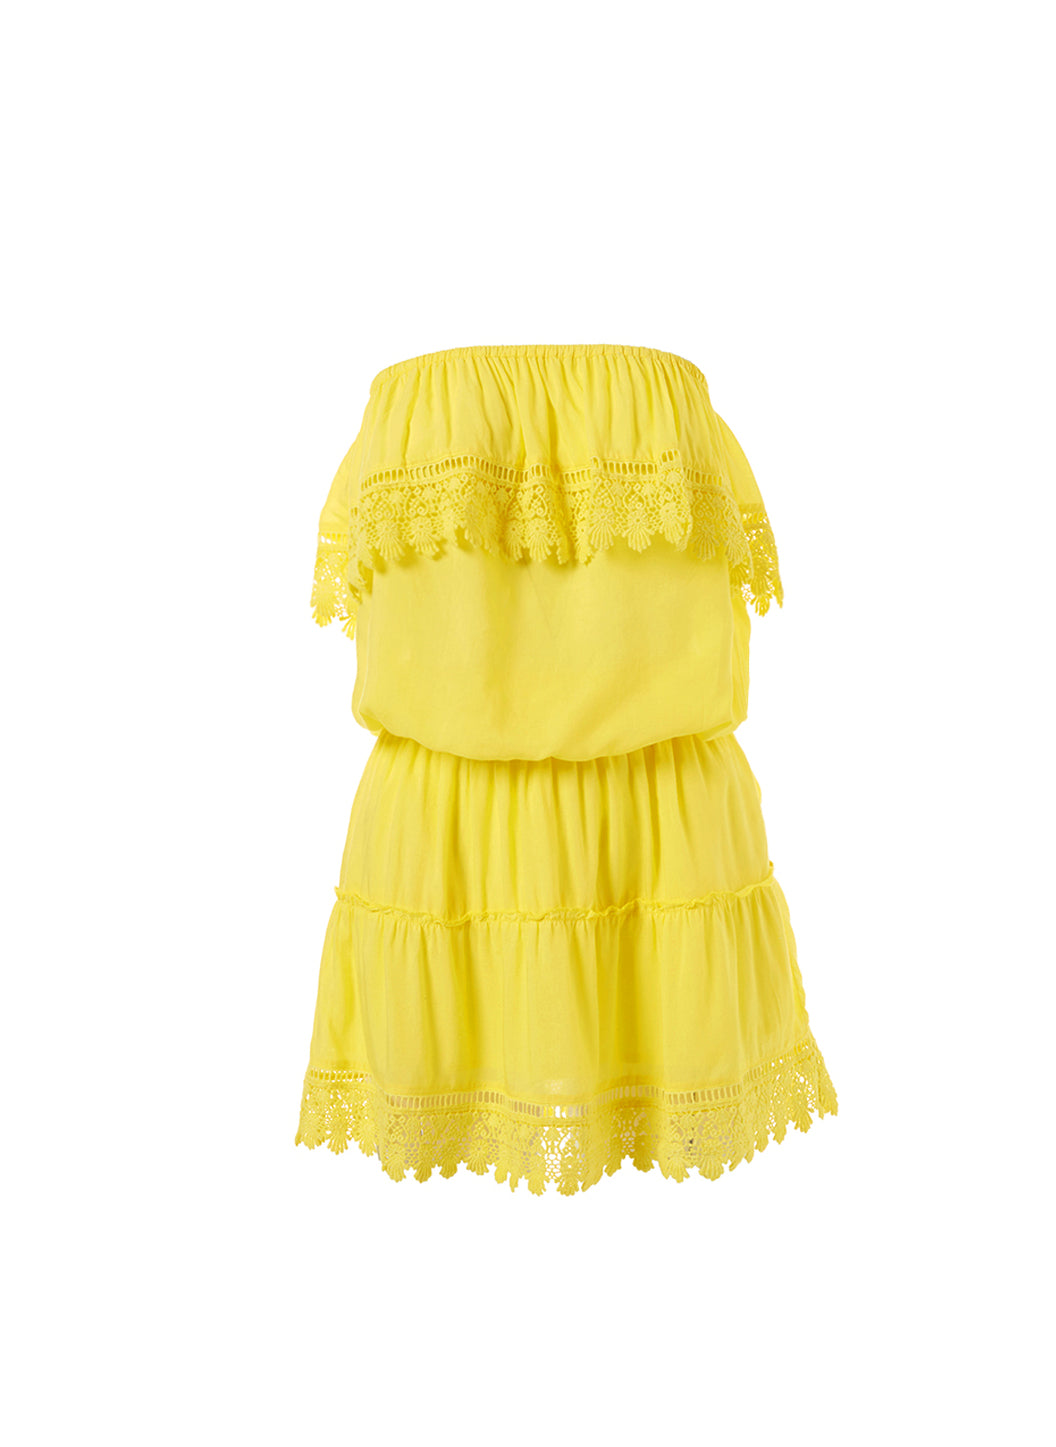 Joy Yellow Bandeau Embroidered Frill Short Dress - Melissa Odabash Beachwear